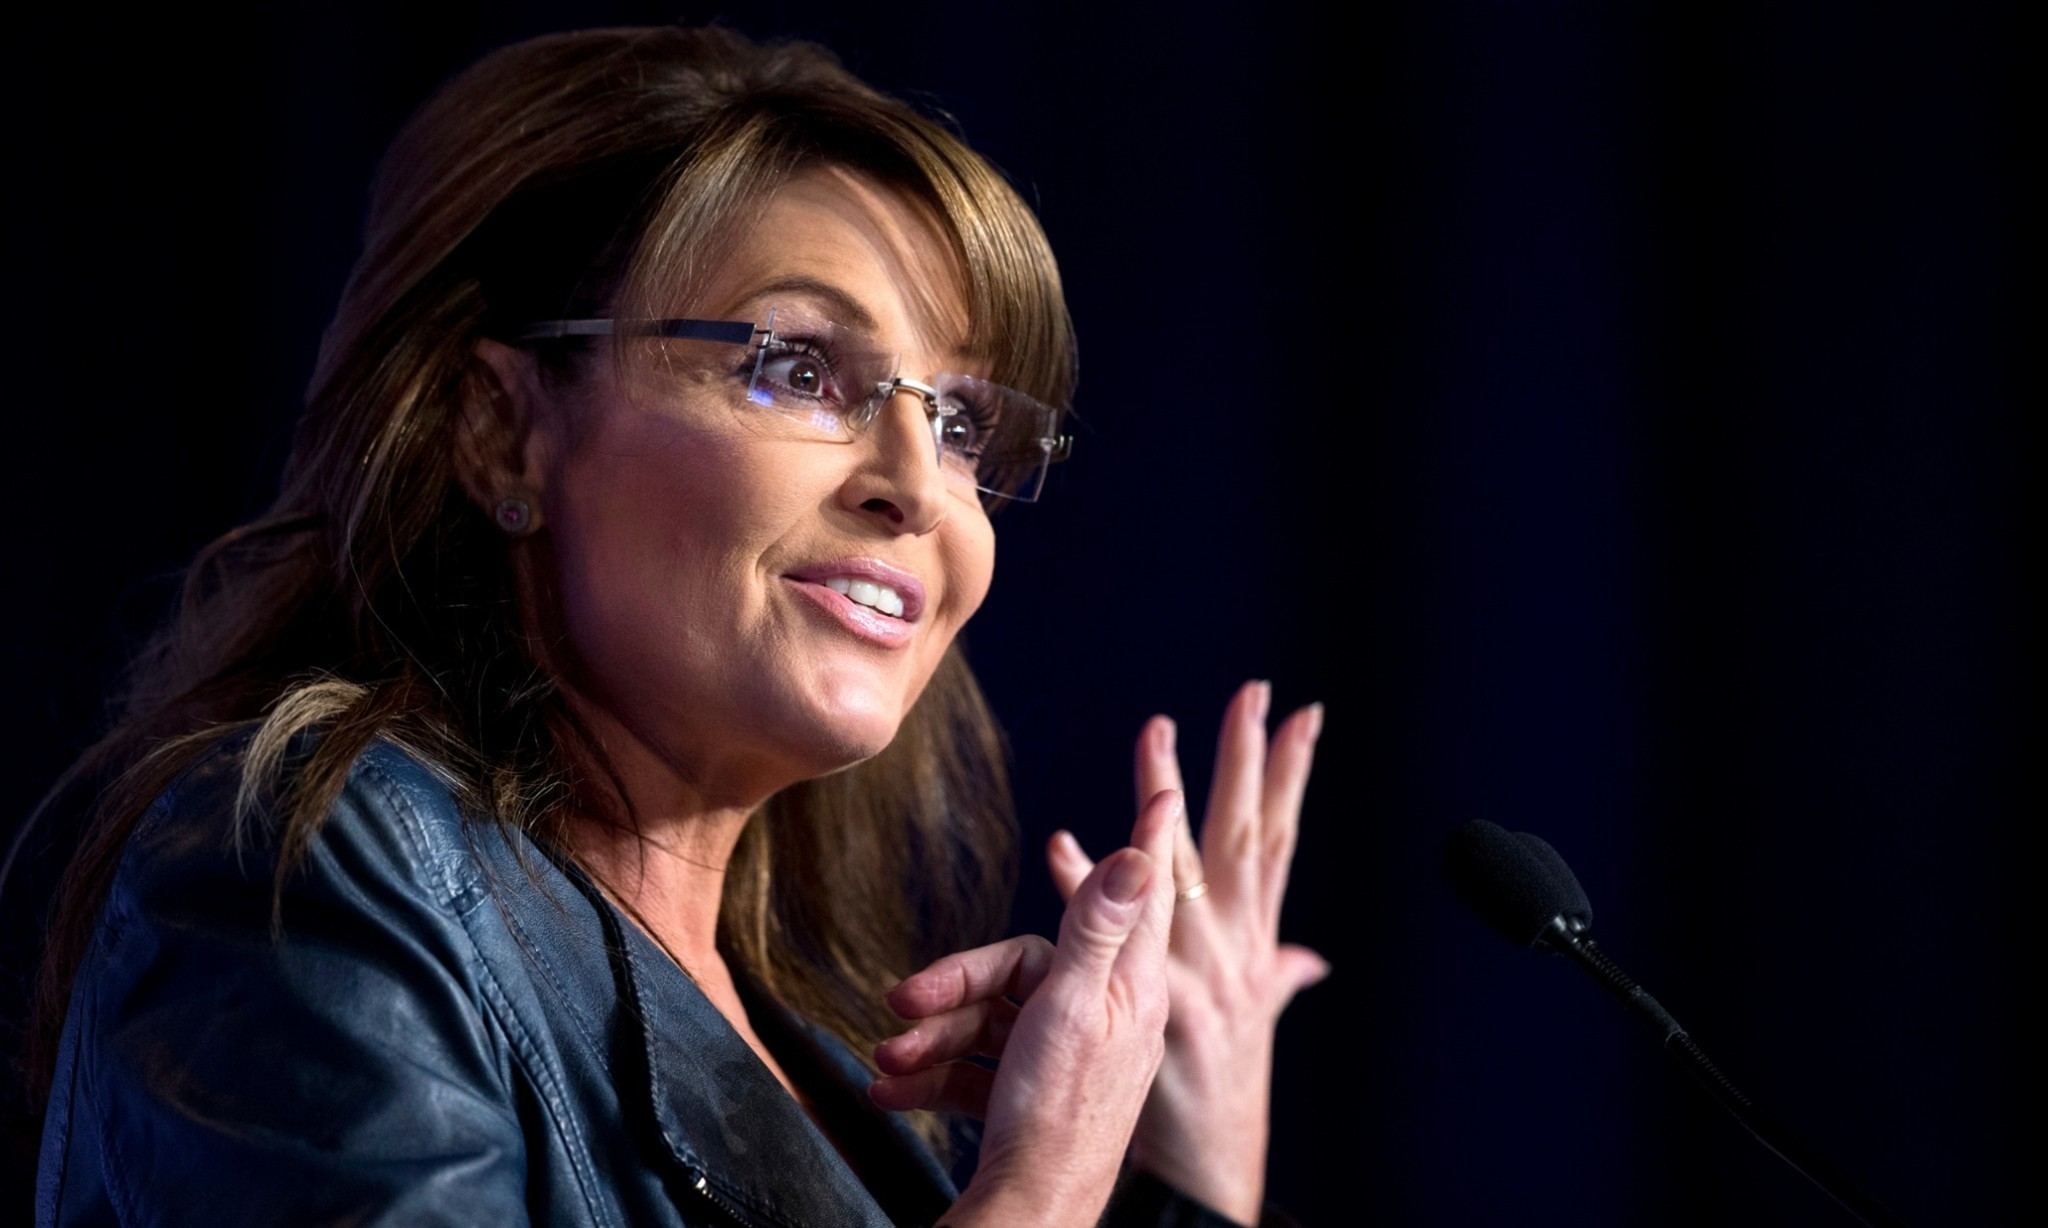 Sarah Palin sparks Facebook fury over images of son stepping on dog